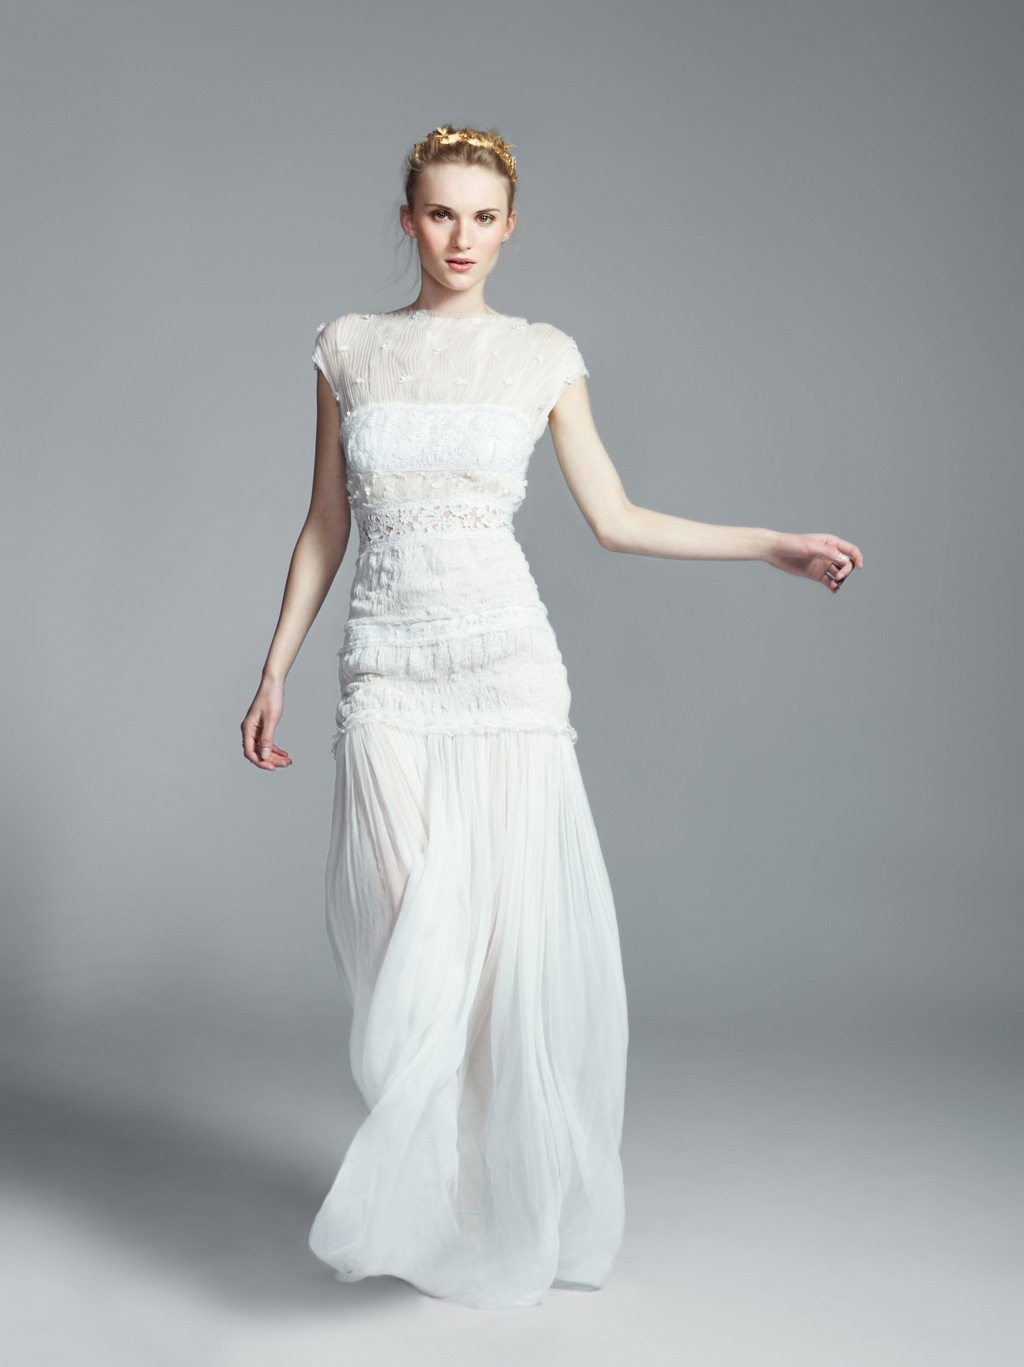 Ricci wedding dress 2013 exclusive bridal designer collection from nina ricci wedding dress 2013 exclusive bridal designer collection from net a porter ombrellifo Images